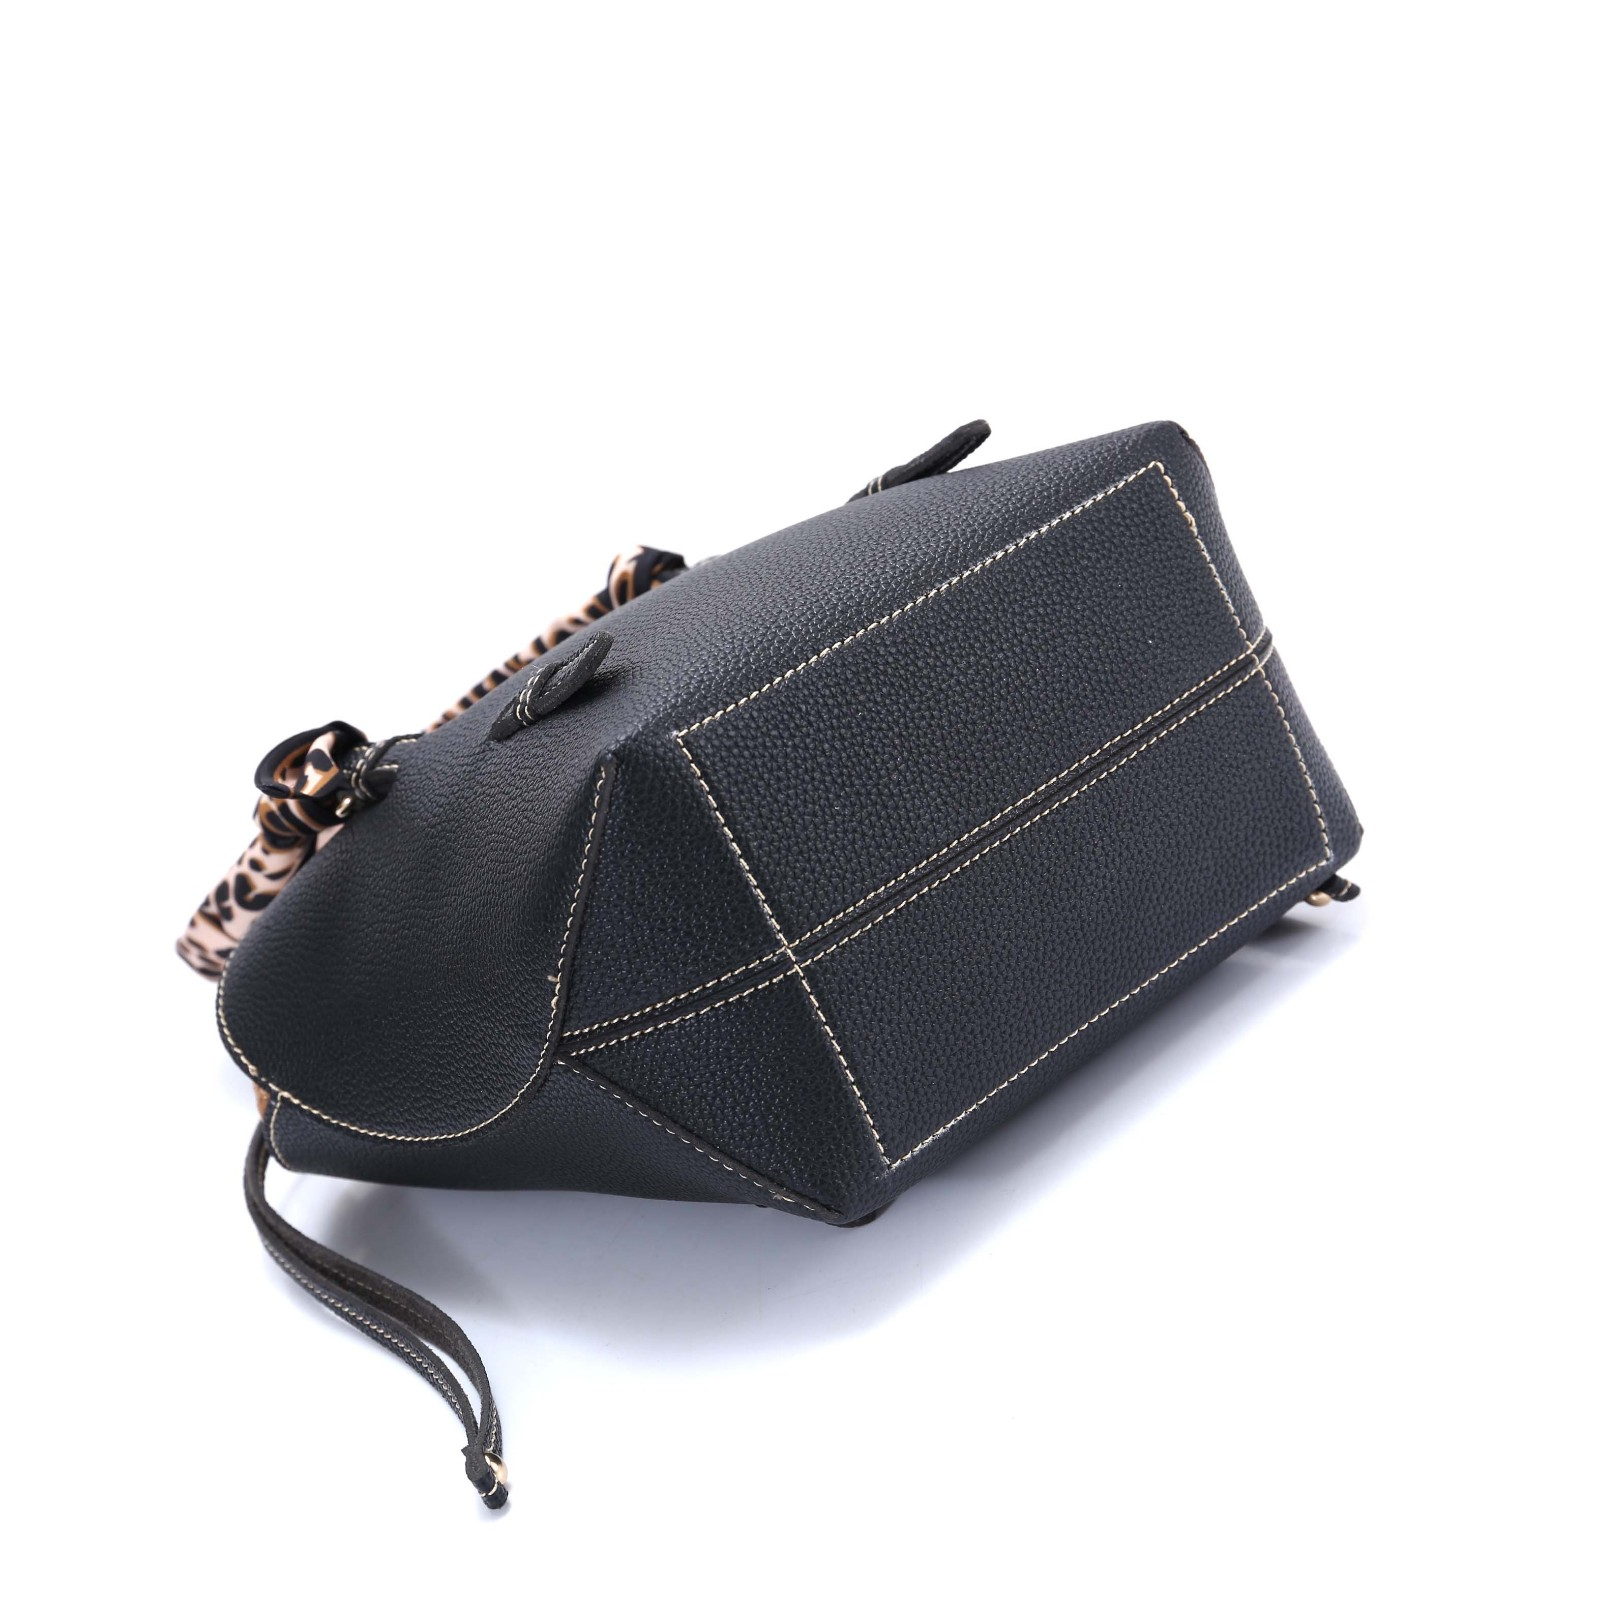 ANGEDANLIA box woven leather bag manufacturer for school-7